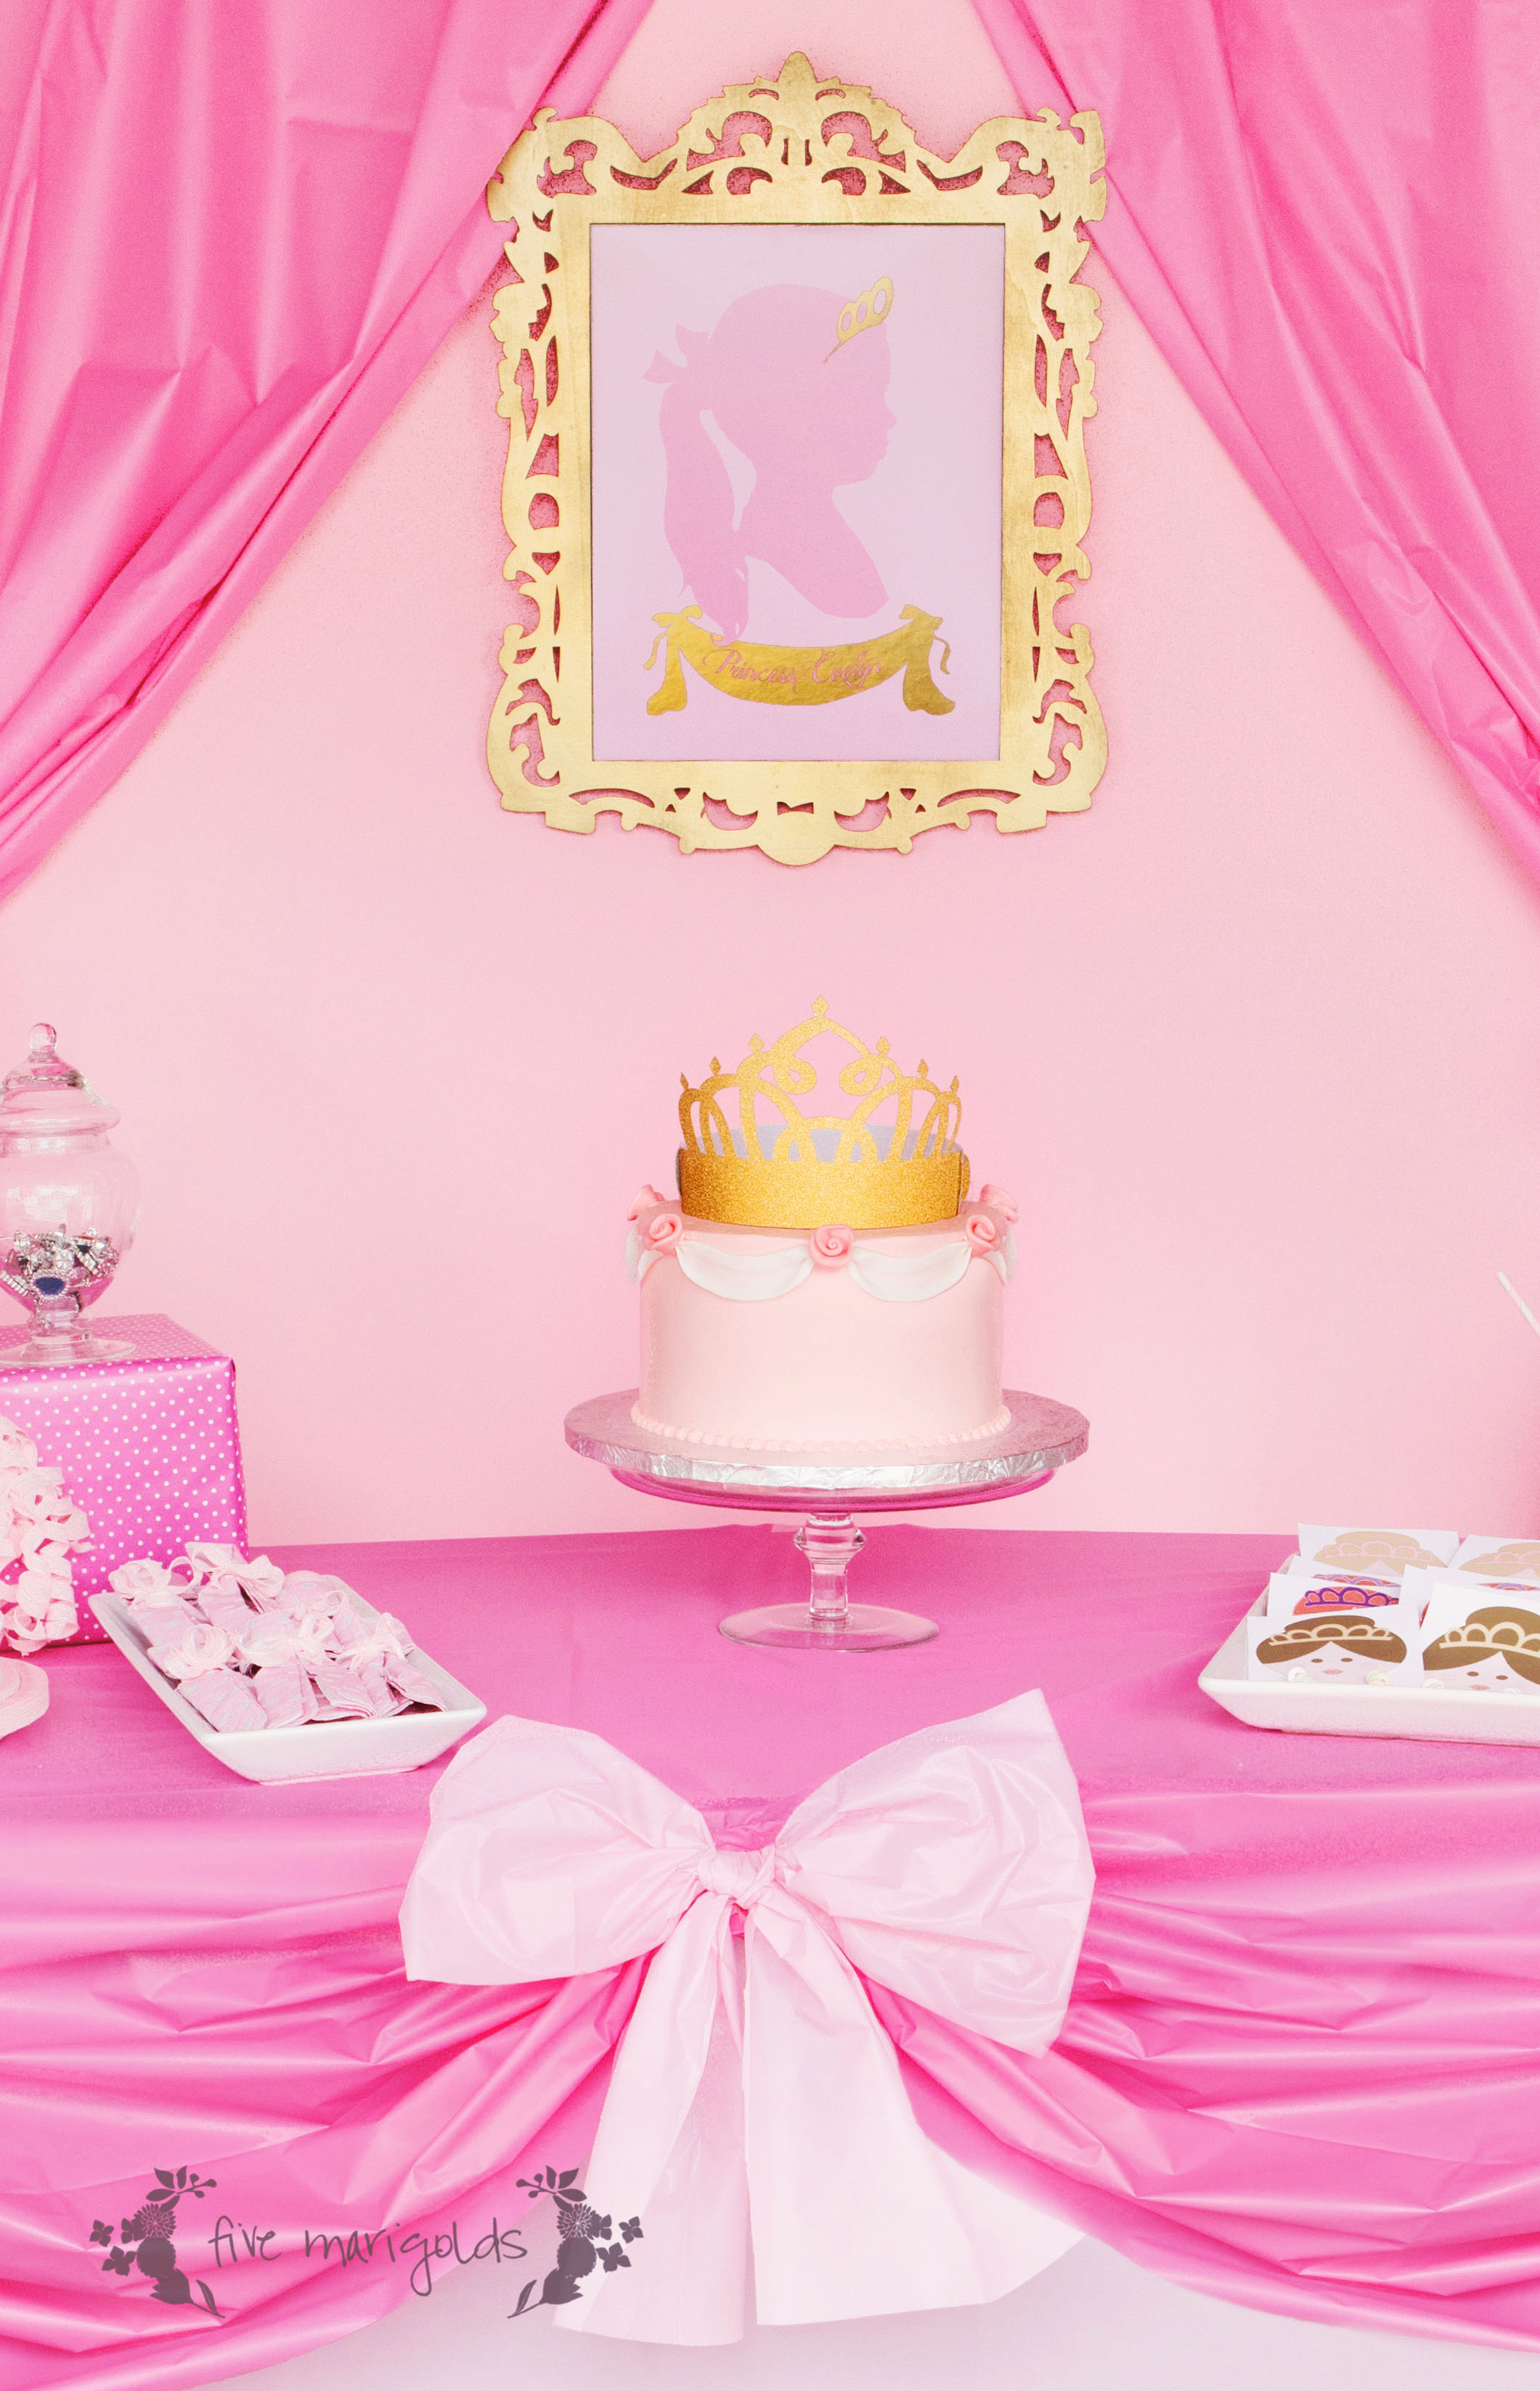 Complete Pink Princess Party for Less than $20 - Five Marigolds